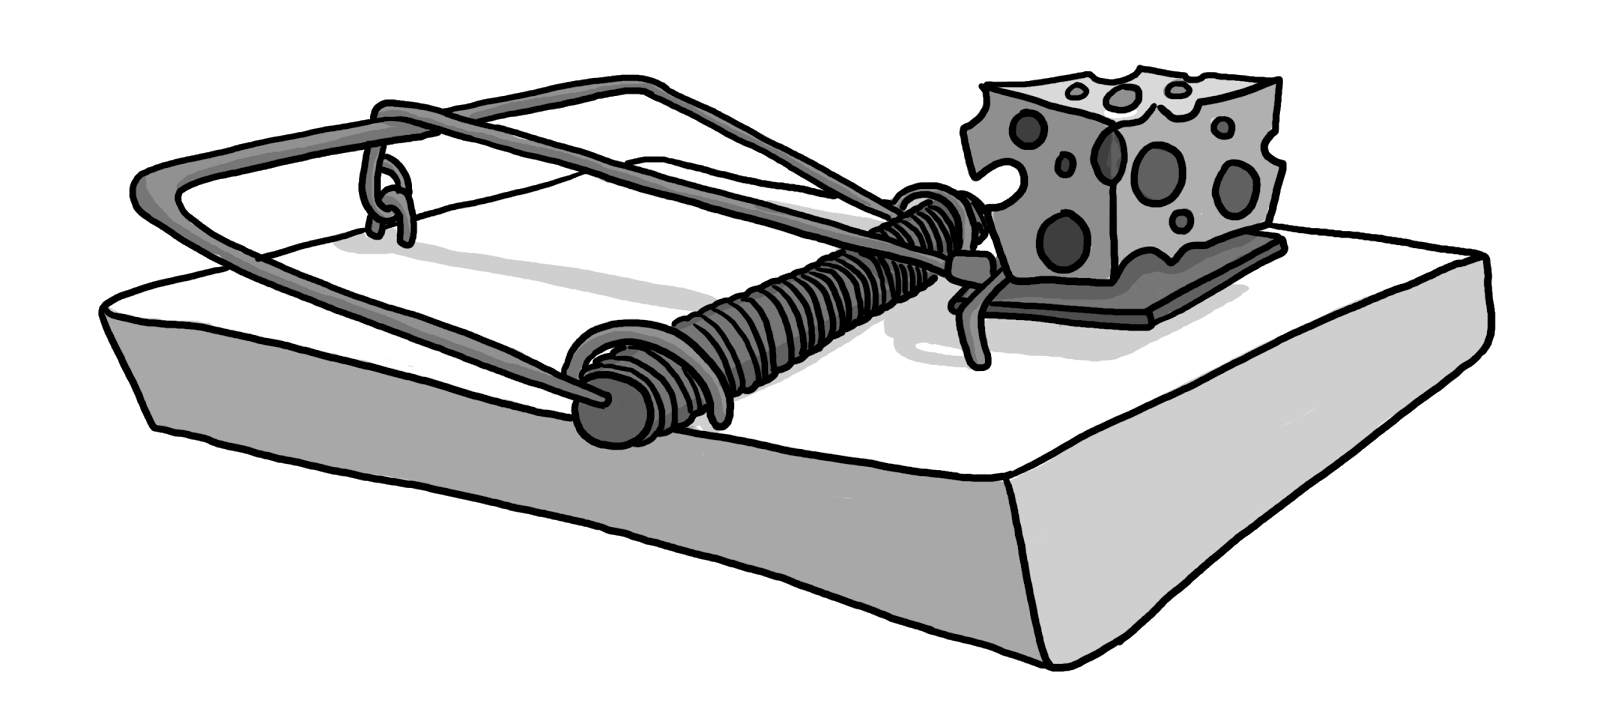 A House Mouse in Trap Clip Art.